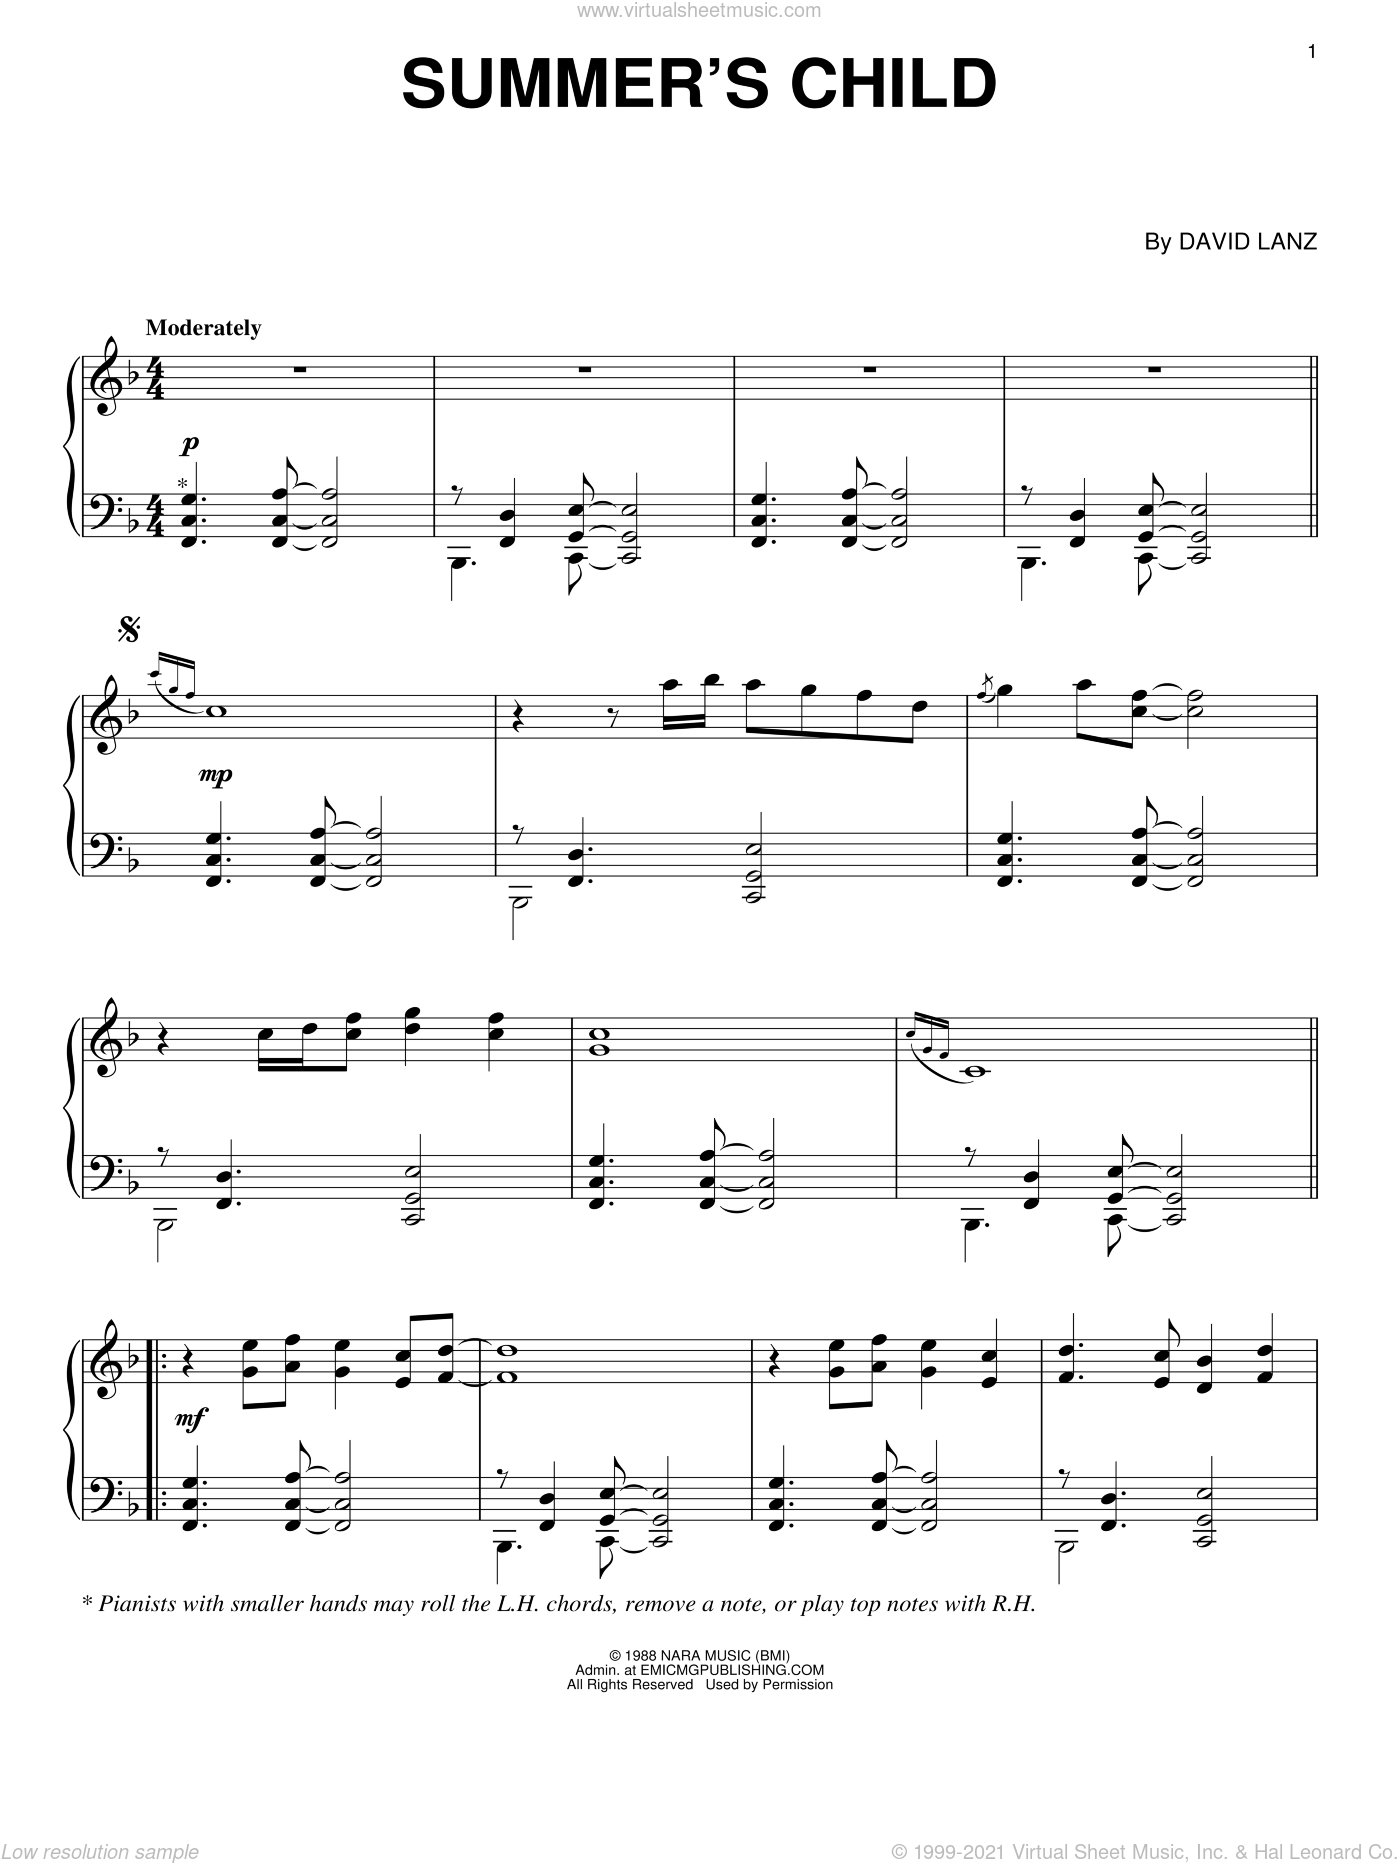 Summer's Child sheet music for piano solo by David Lanz, intermediate skill level